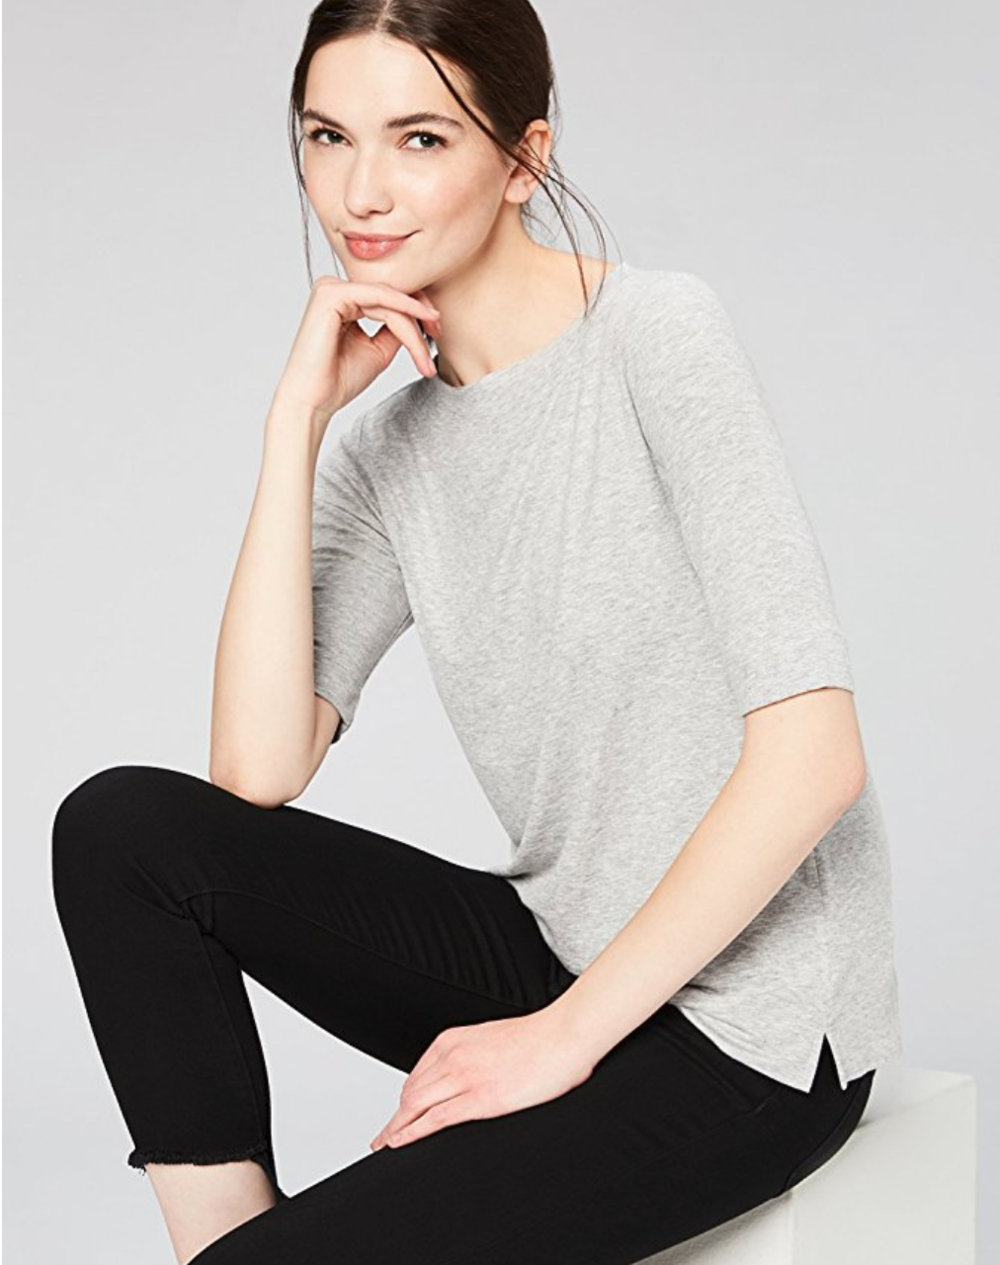 Amazon Fashion's private in-house label, Daily Ritual, makes gorgeous basics that feel very French chic.